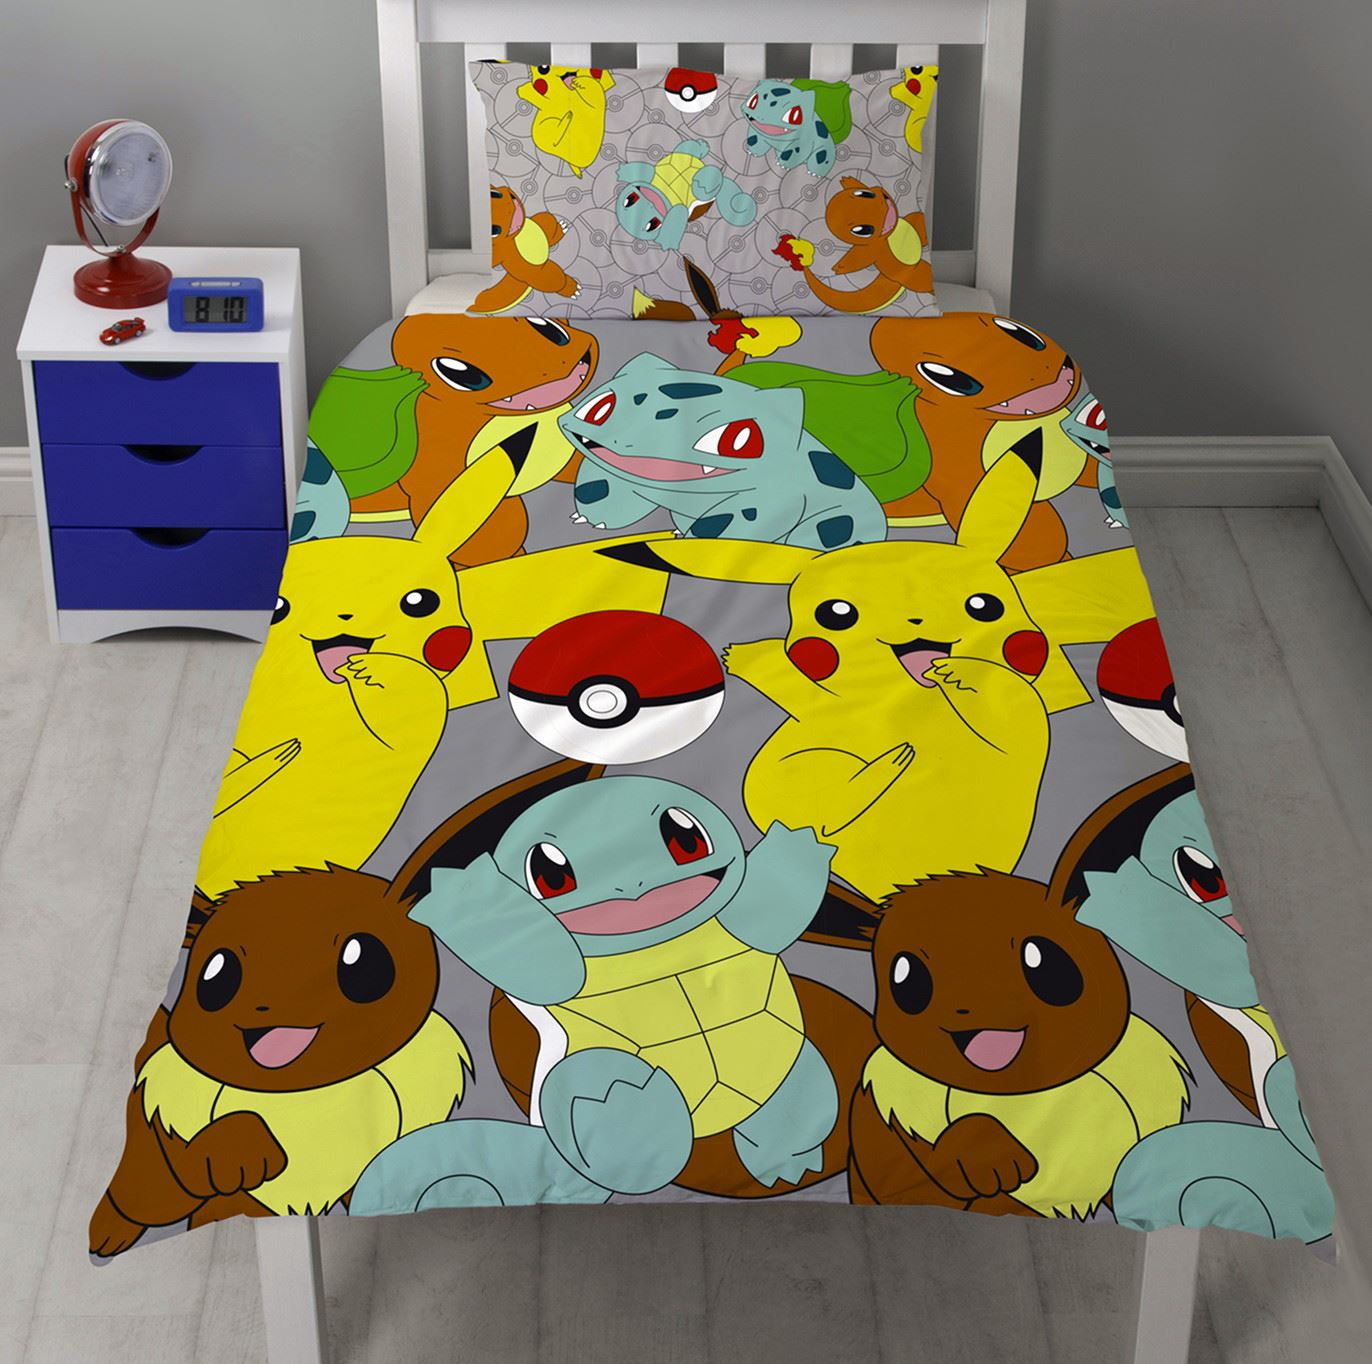 Official-Pokemon-Licensed-Duvet-Covers-Single-Double-Pikachu-Bedding-Gaming thumbnail 7